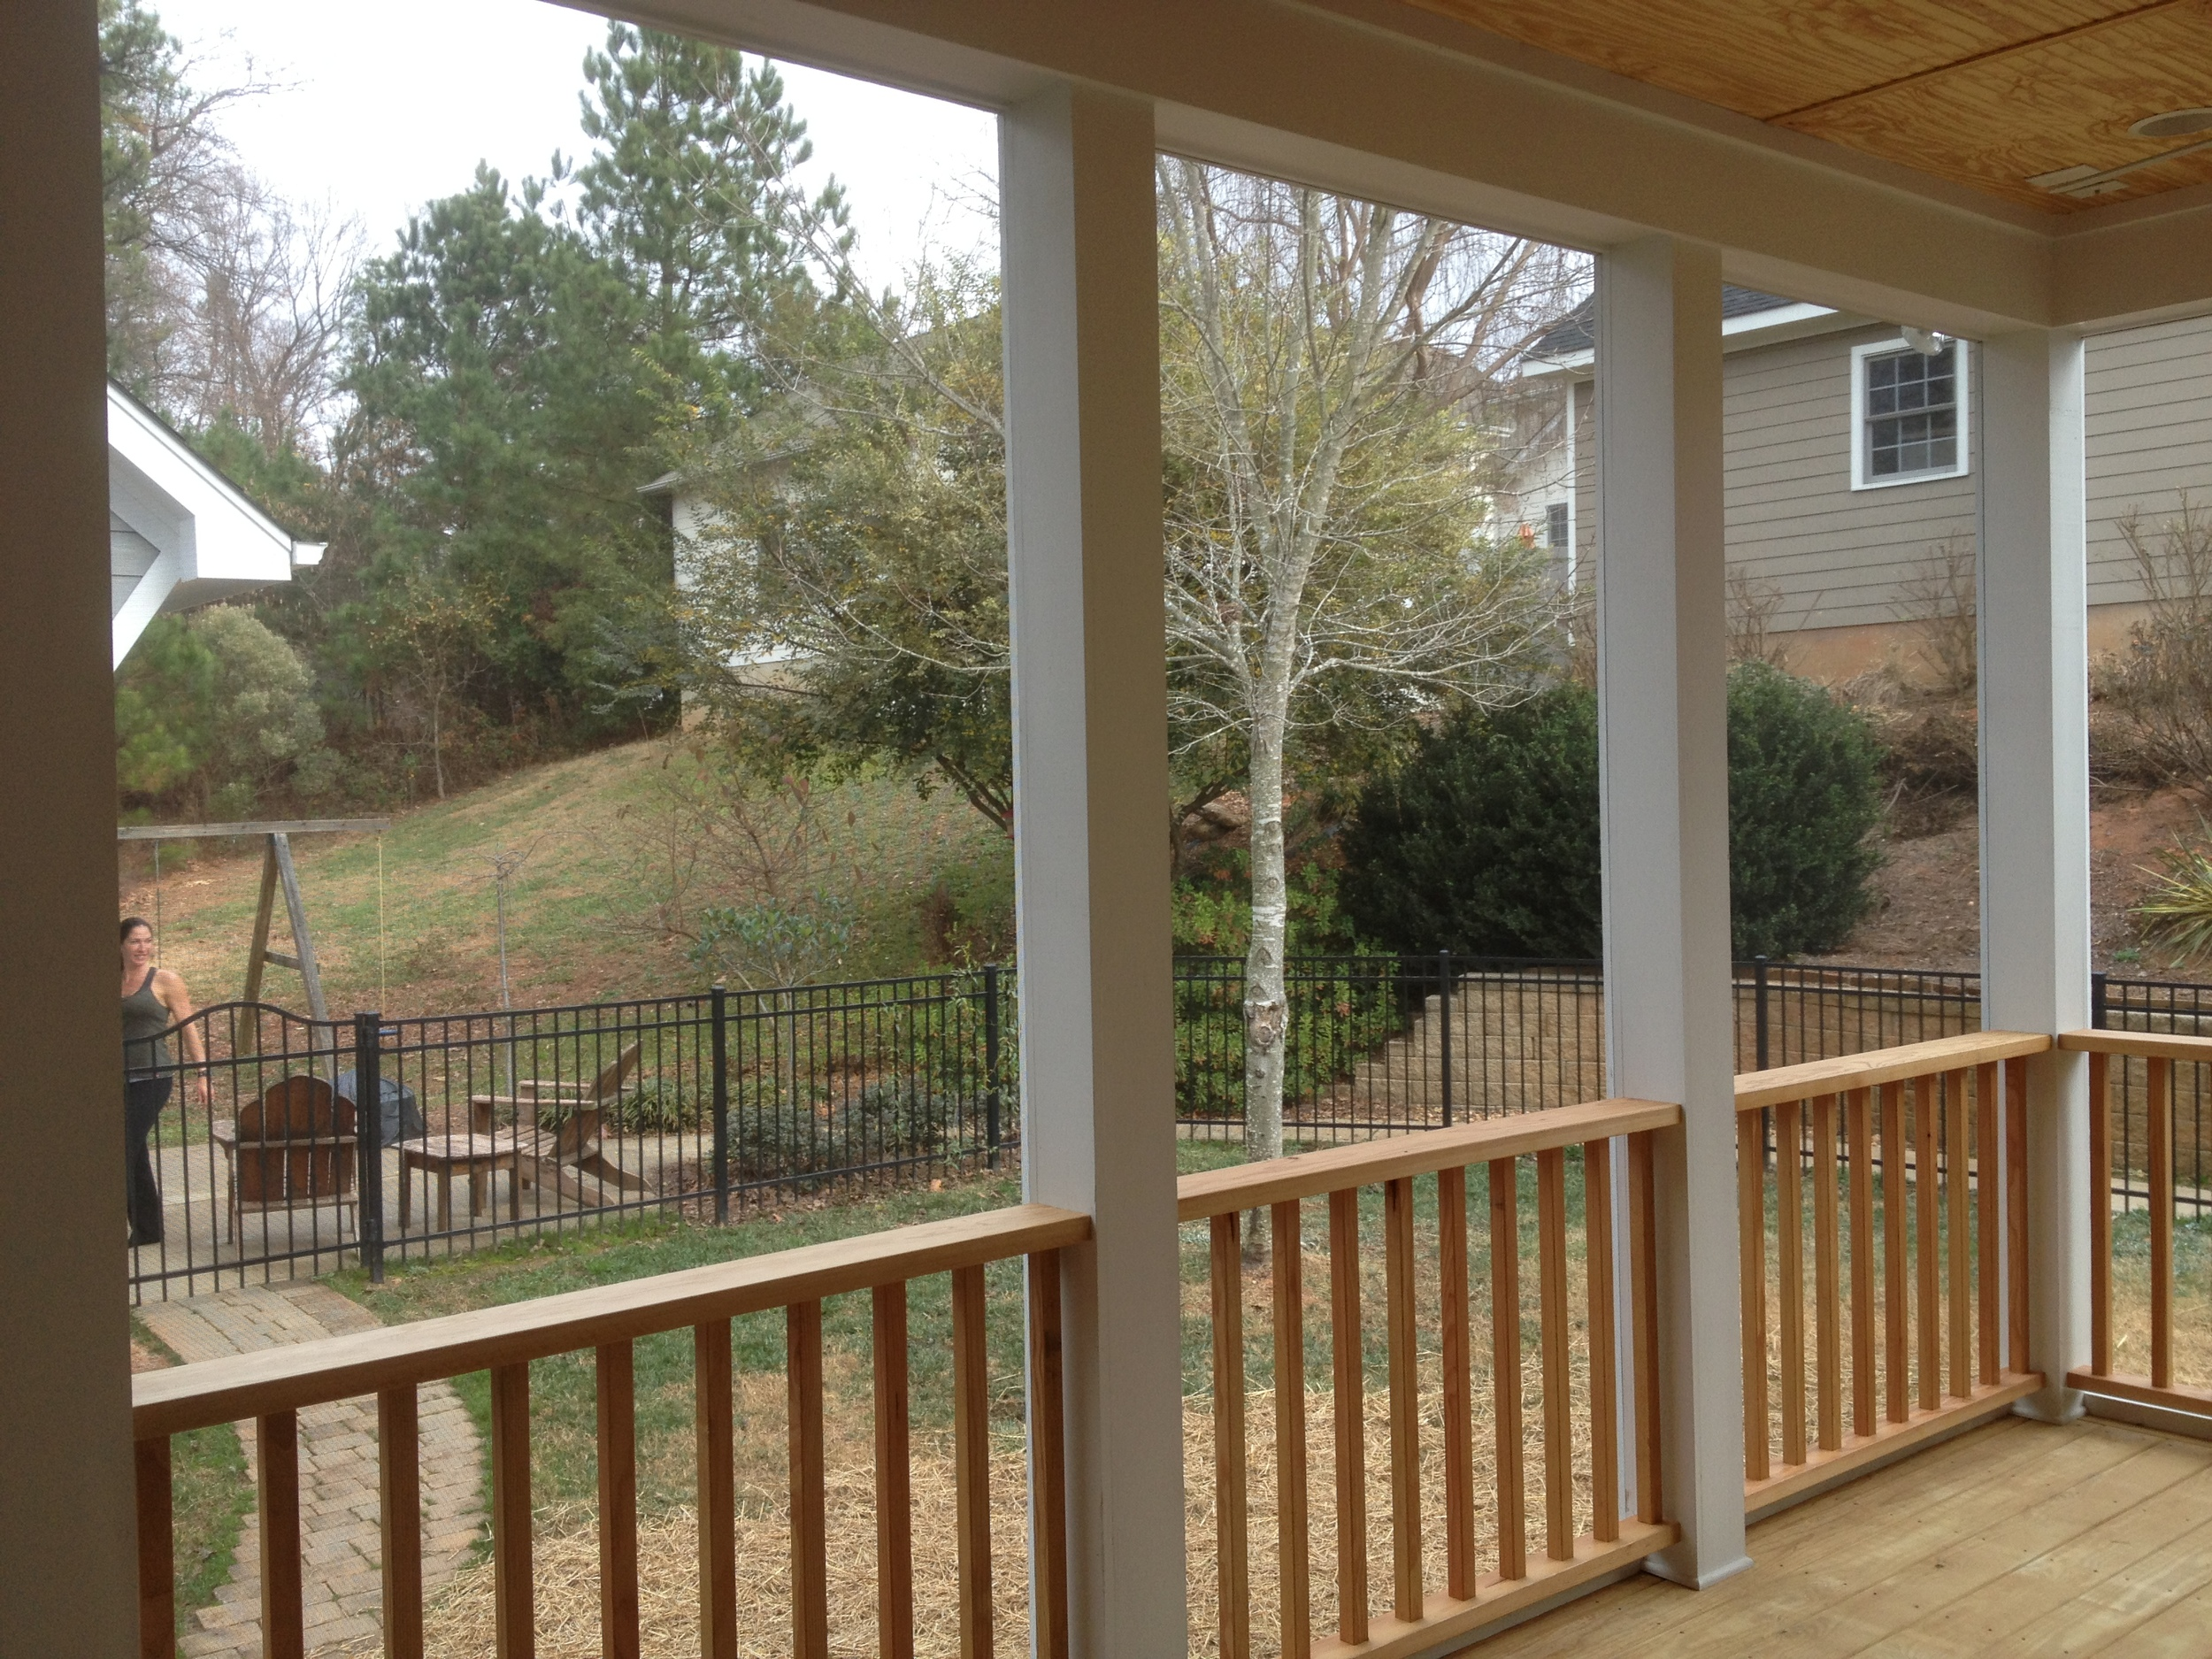 Baxter Village, SC - Covered Outdoor Deck